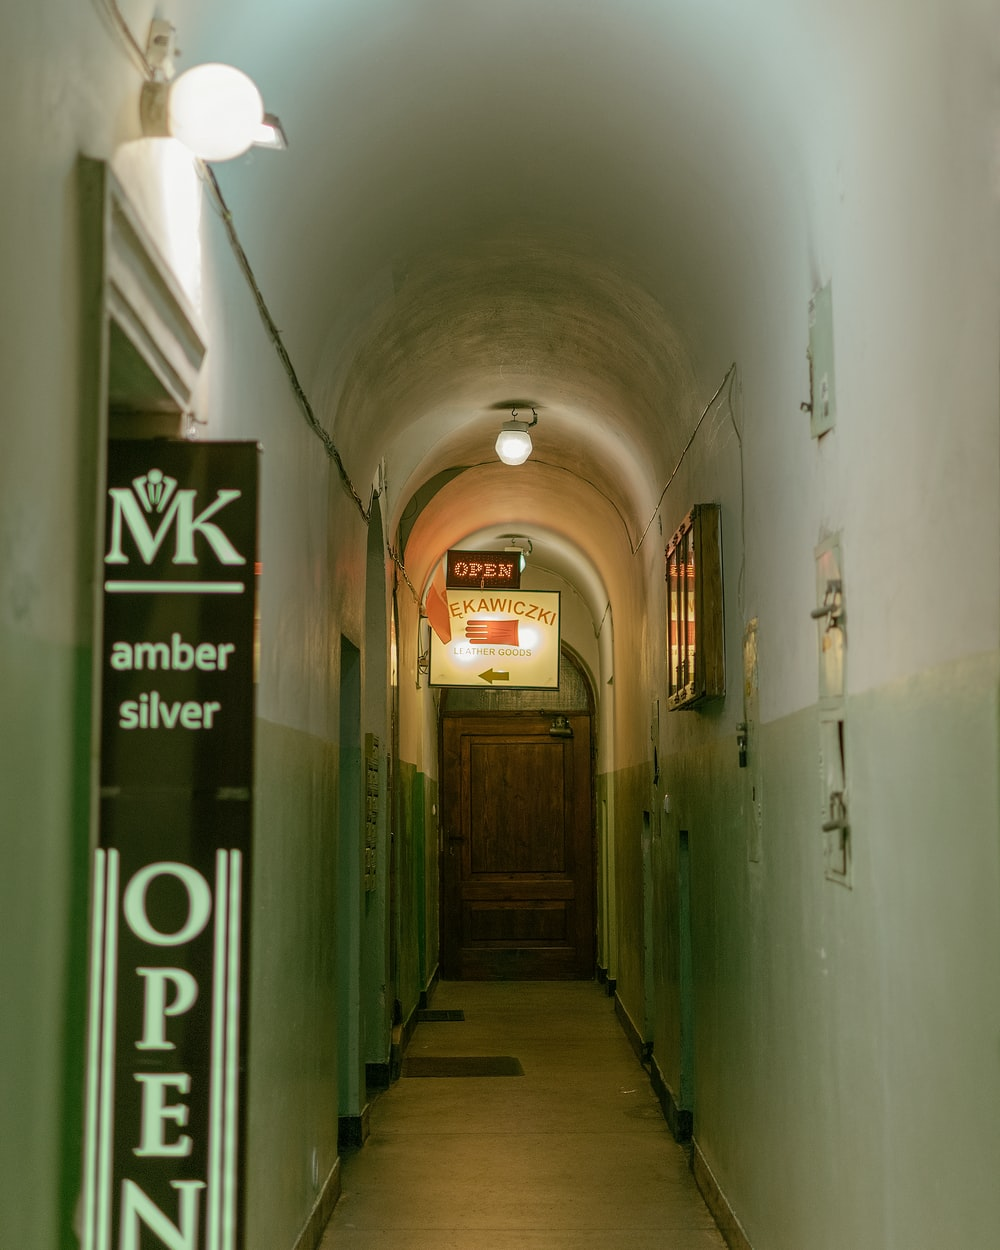 hallway with green metal doors